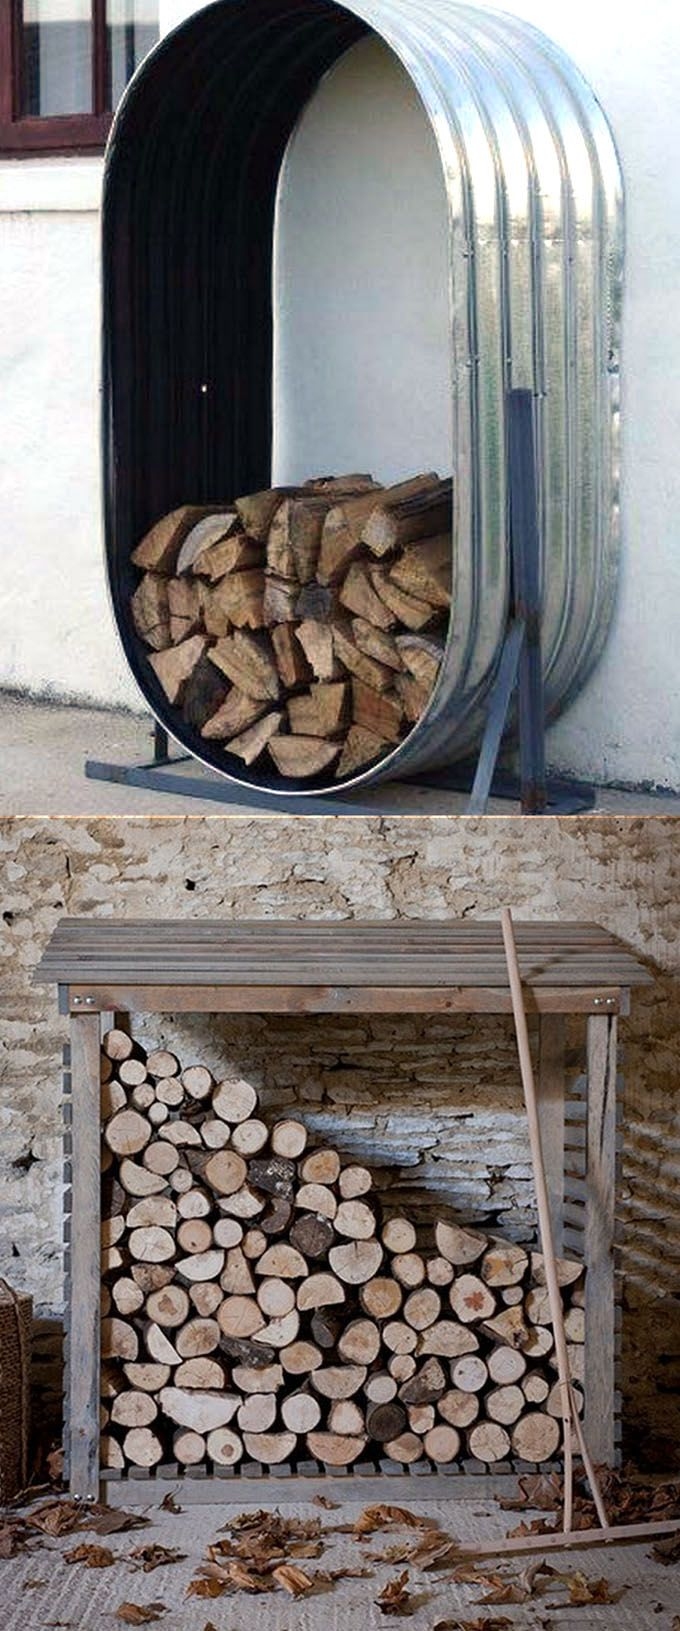 Exceptionnel 15 Firewood Storage And Creative Firewood Rack Ideas For Indoors And  Outdoors. Lots Of Great Building Tutorials And DIY Friendly Inspirations!